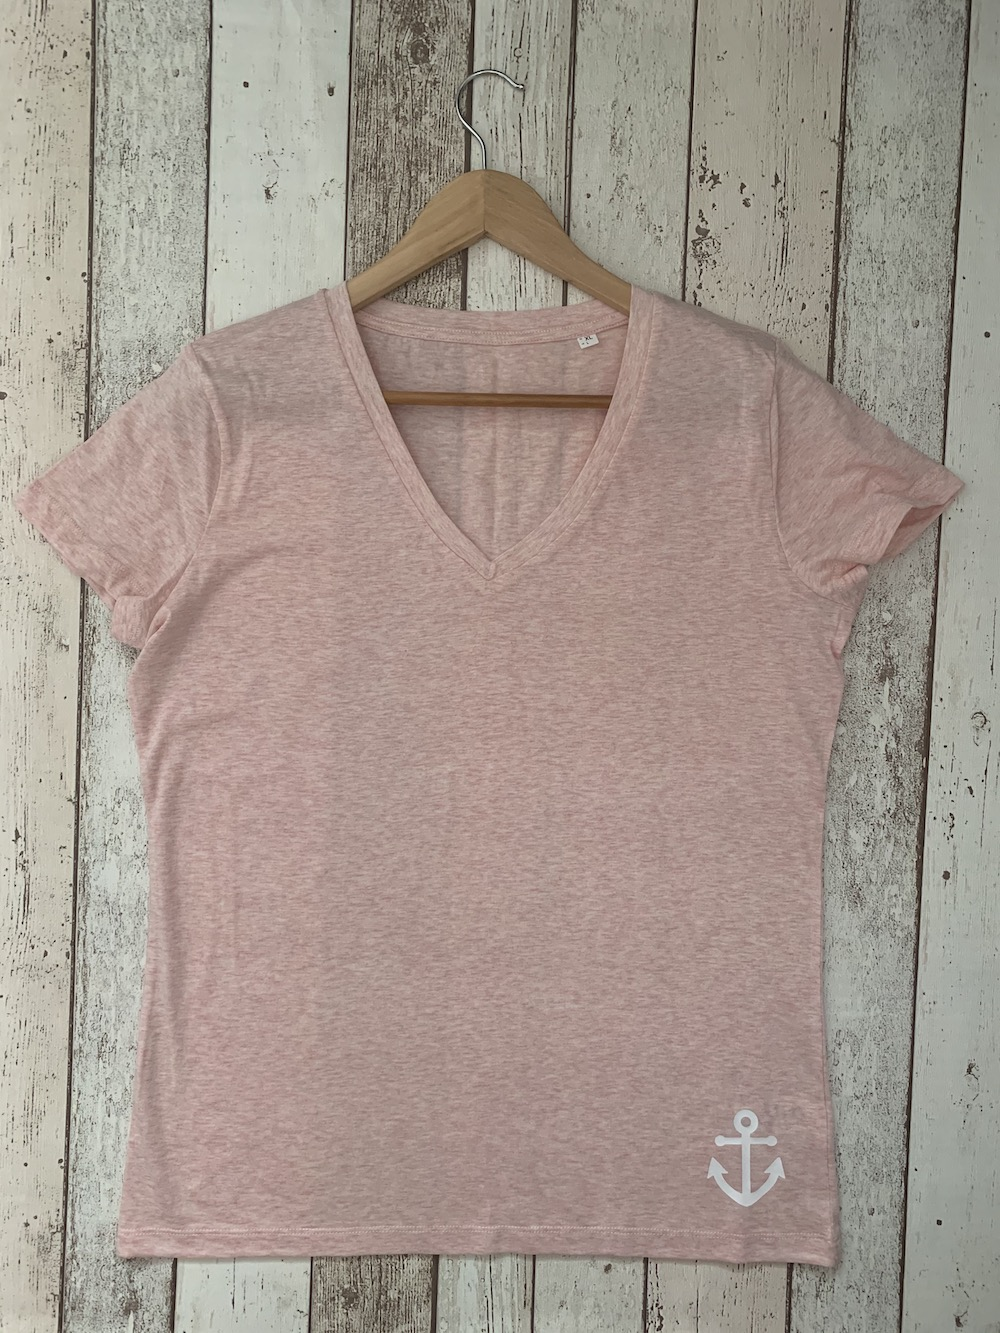 ORGANIC – Anchor V Neck Classic Tshirt – Pink And White